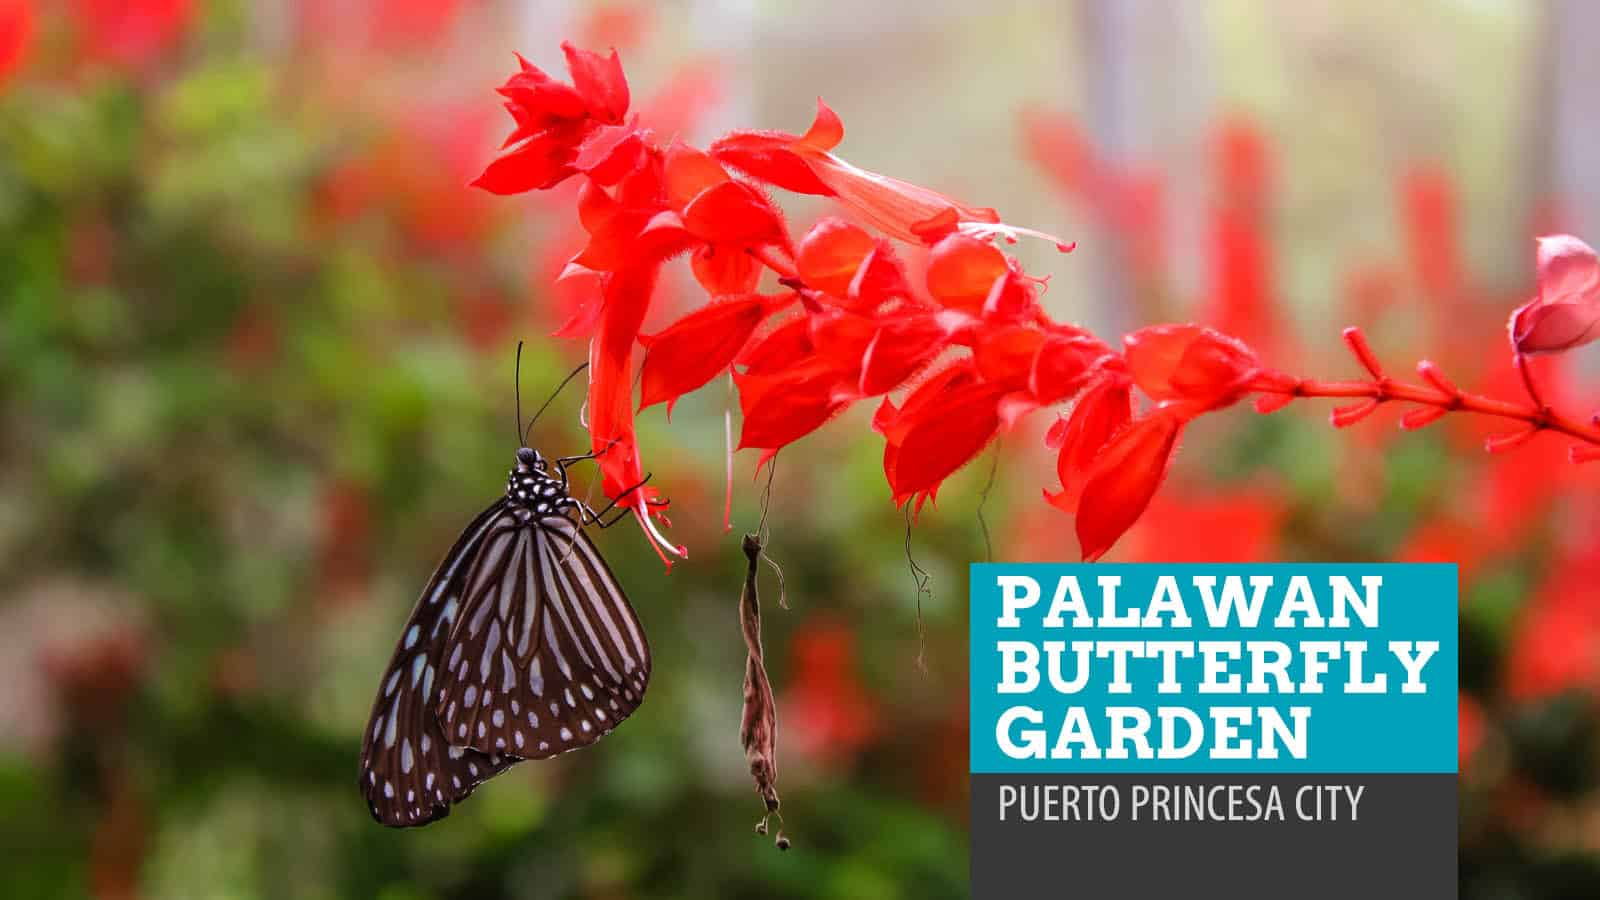 Palawan Butterfly Garden: Beauty and the Bugs in Puerto Princesa